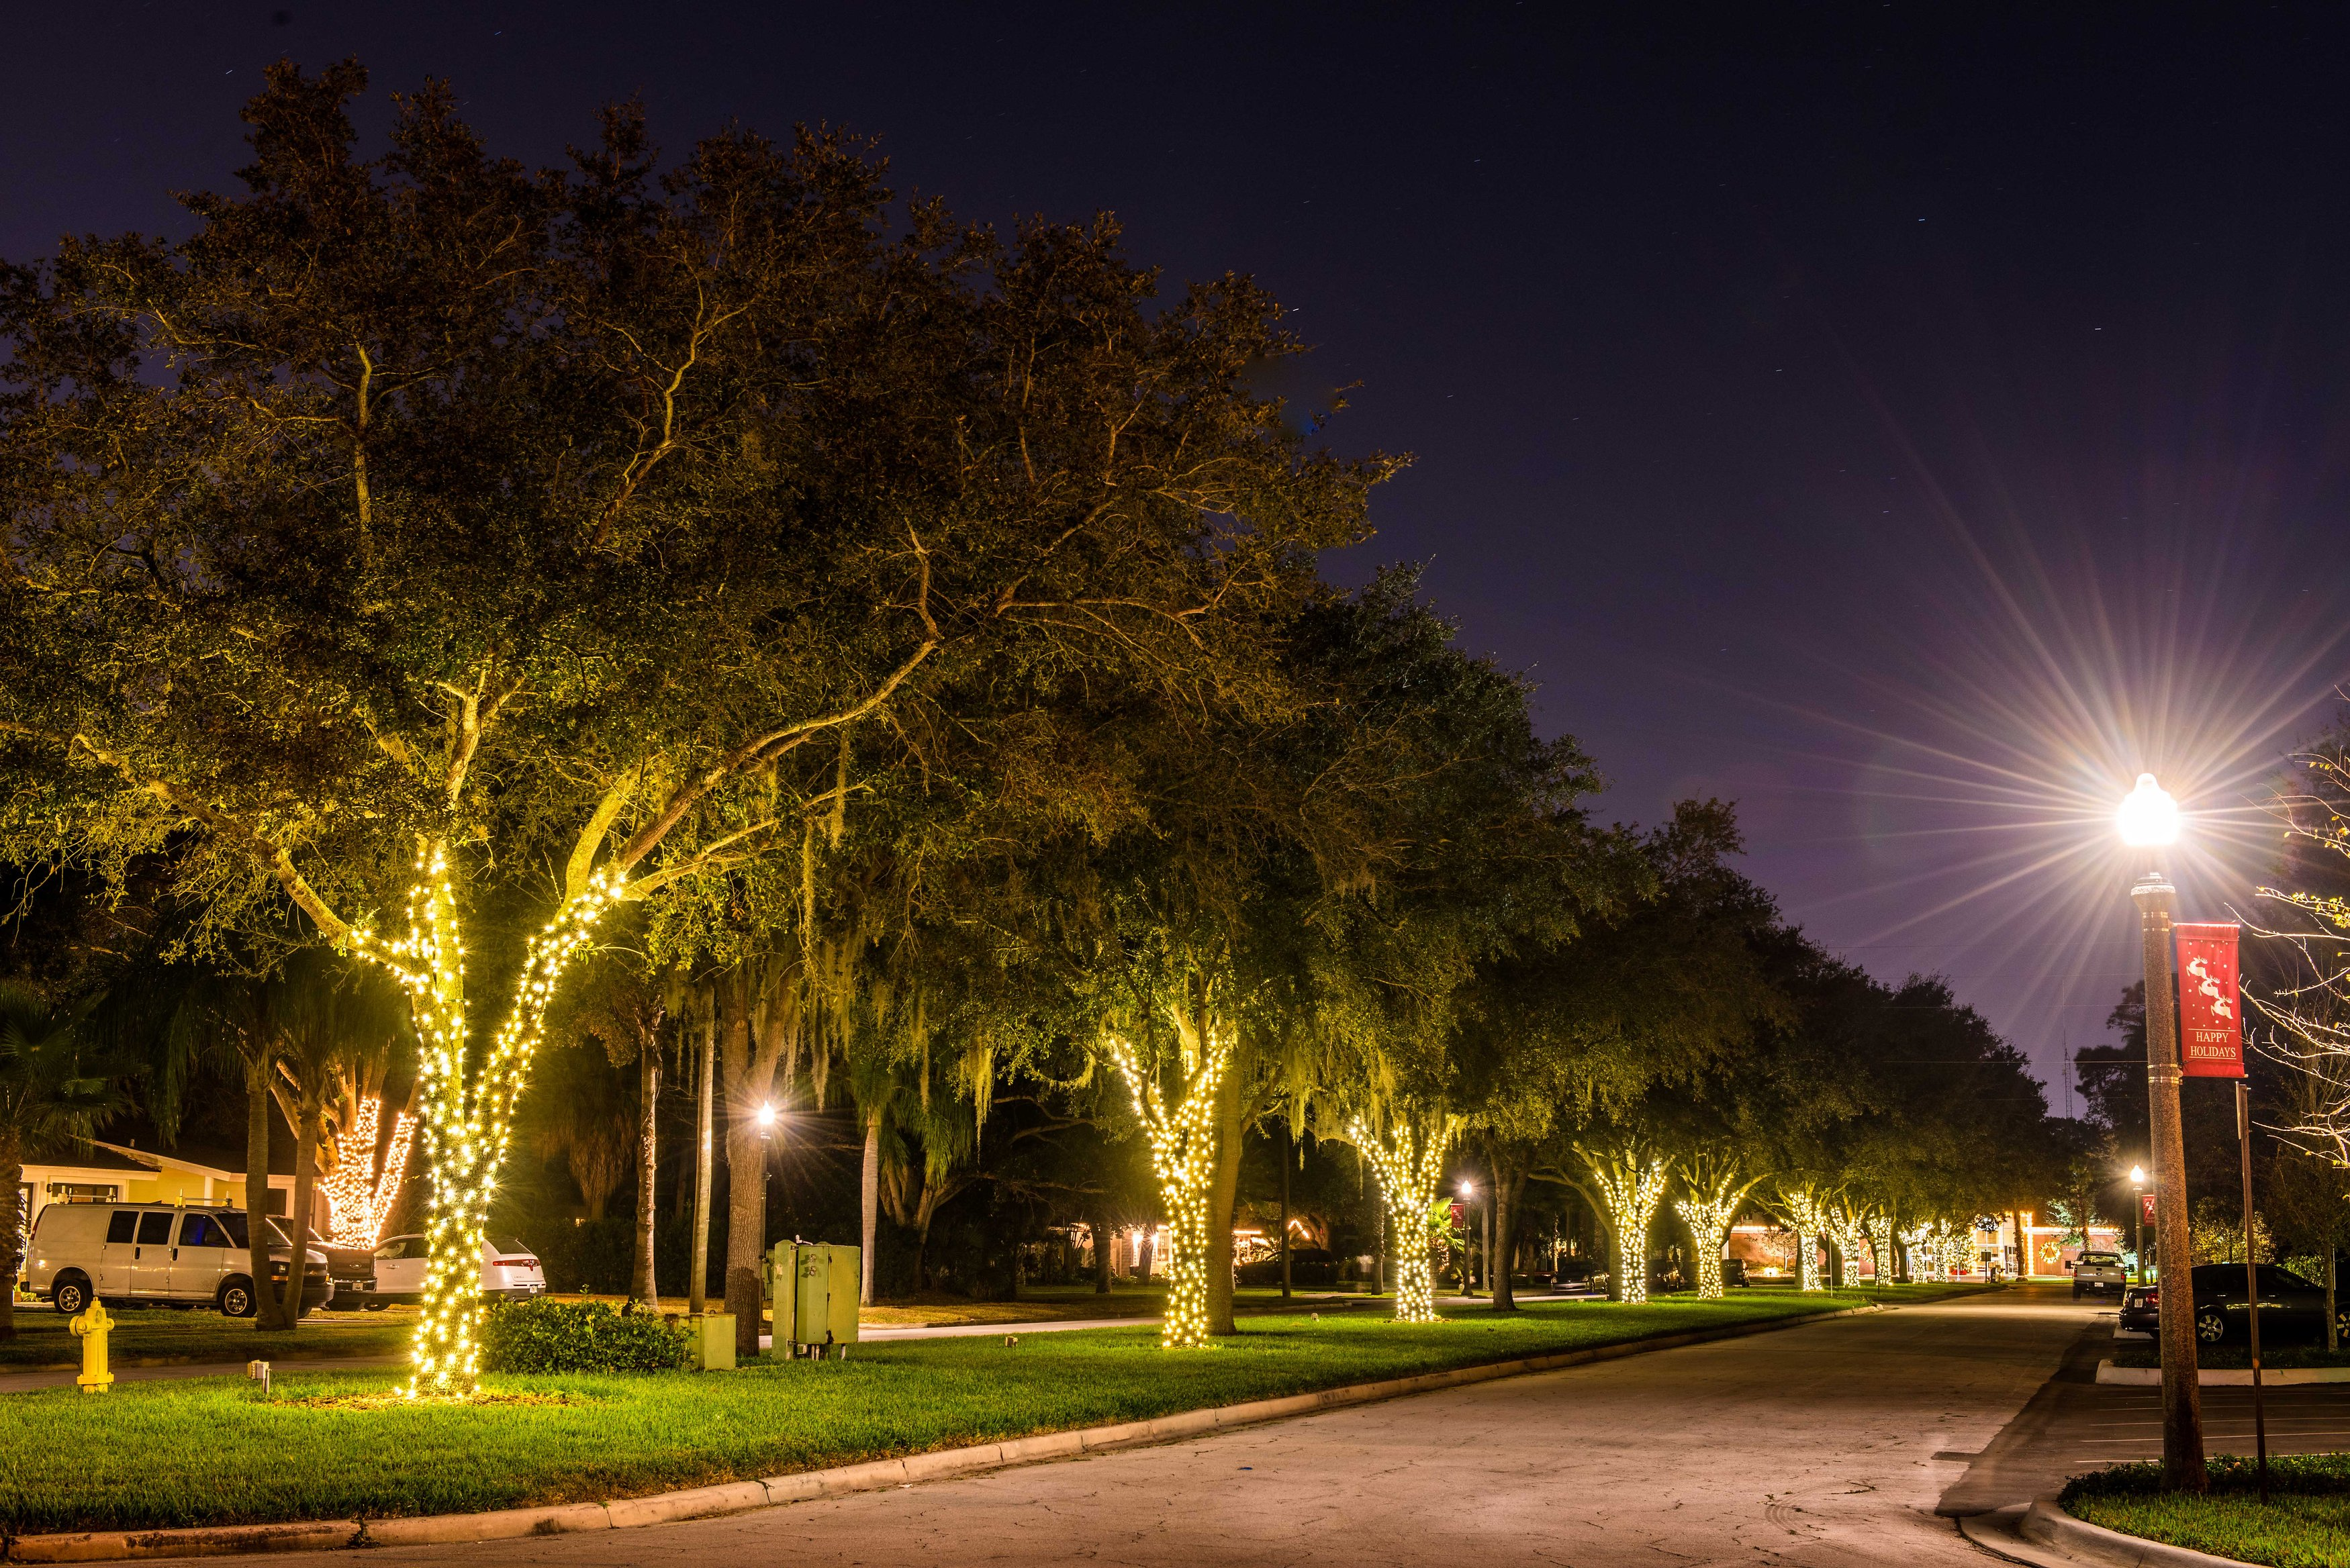 Oak trees along The Mall lit up with white lights for the holiday season